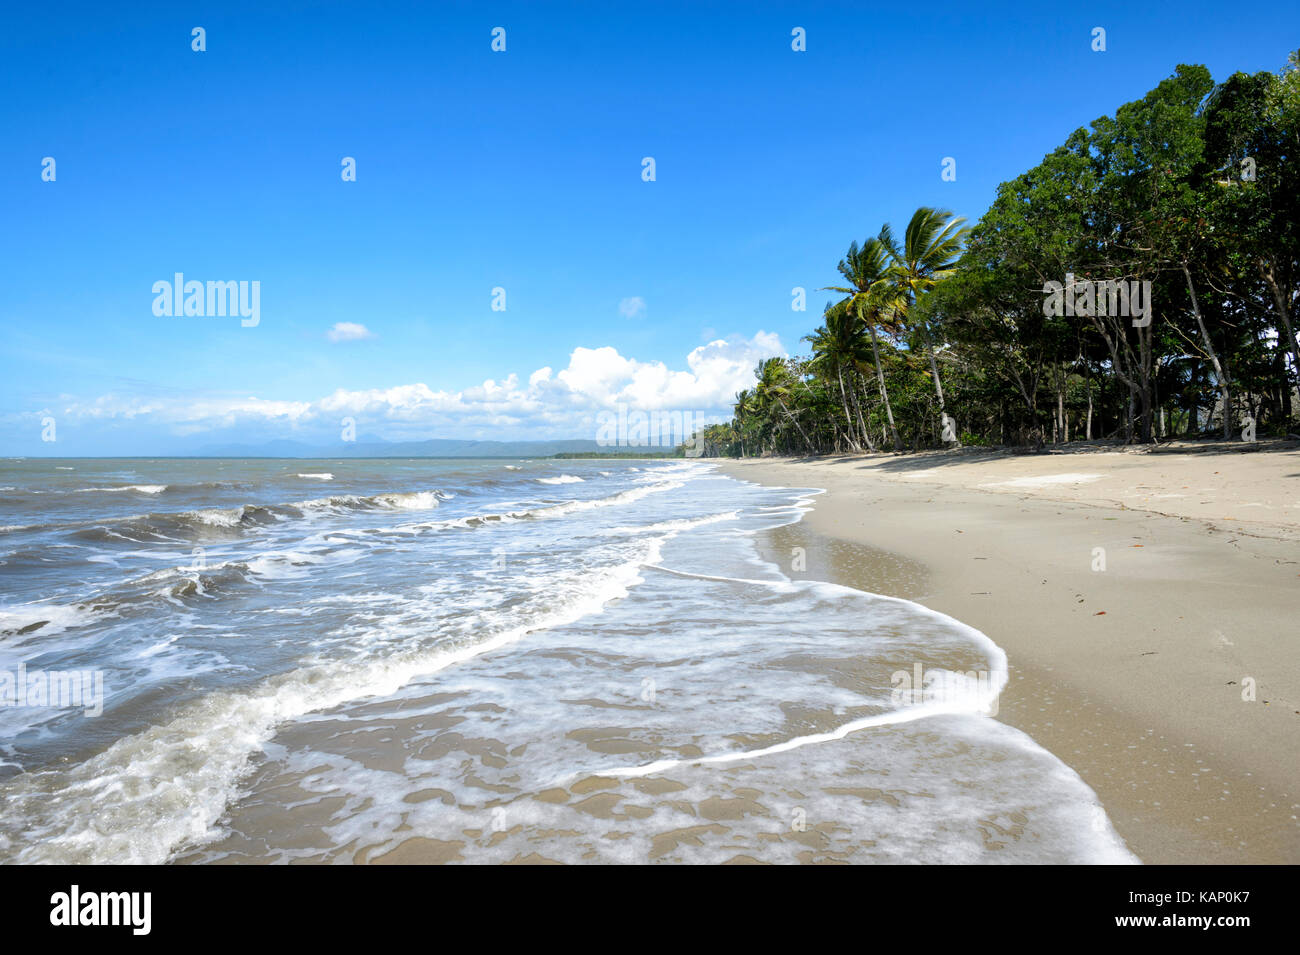 Plage de sable déserte exotiques, Newell Beach, Far North Queensland, Queensland, Australie, FNQ Photo Stock